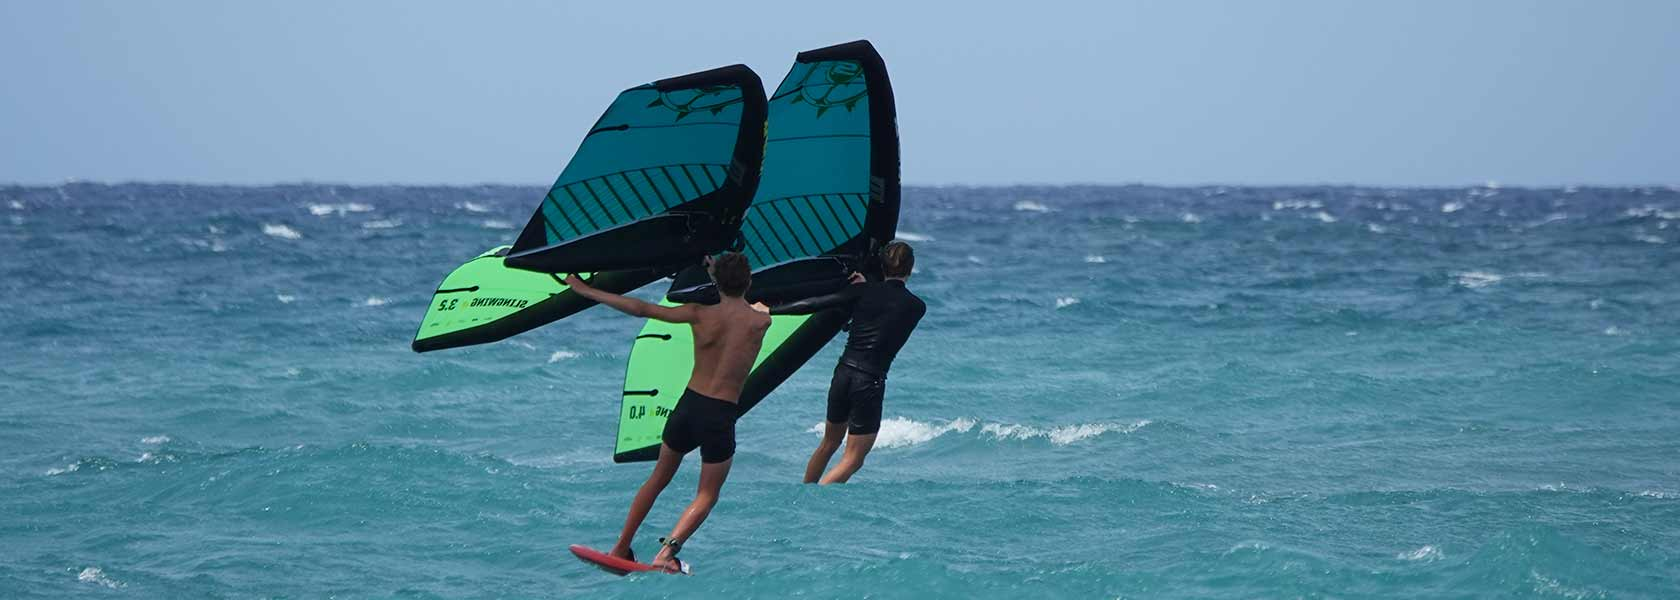 wing surfing brothers